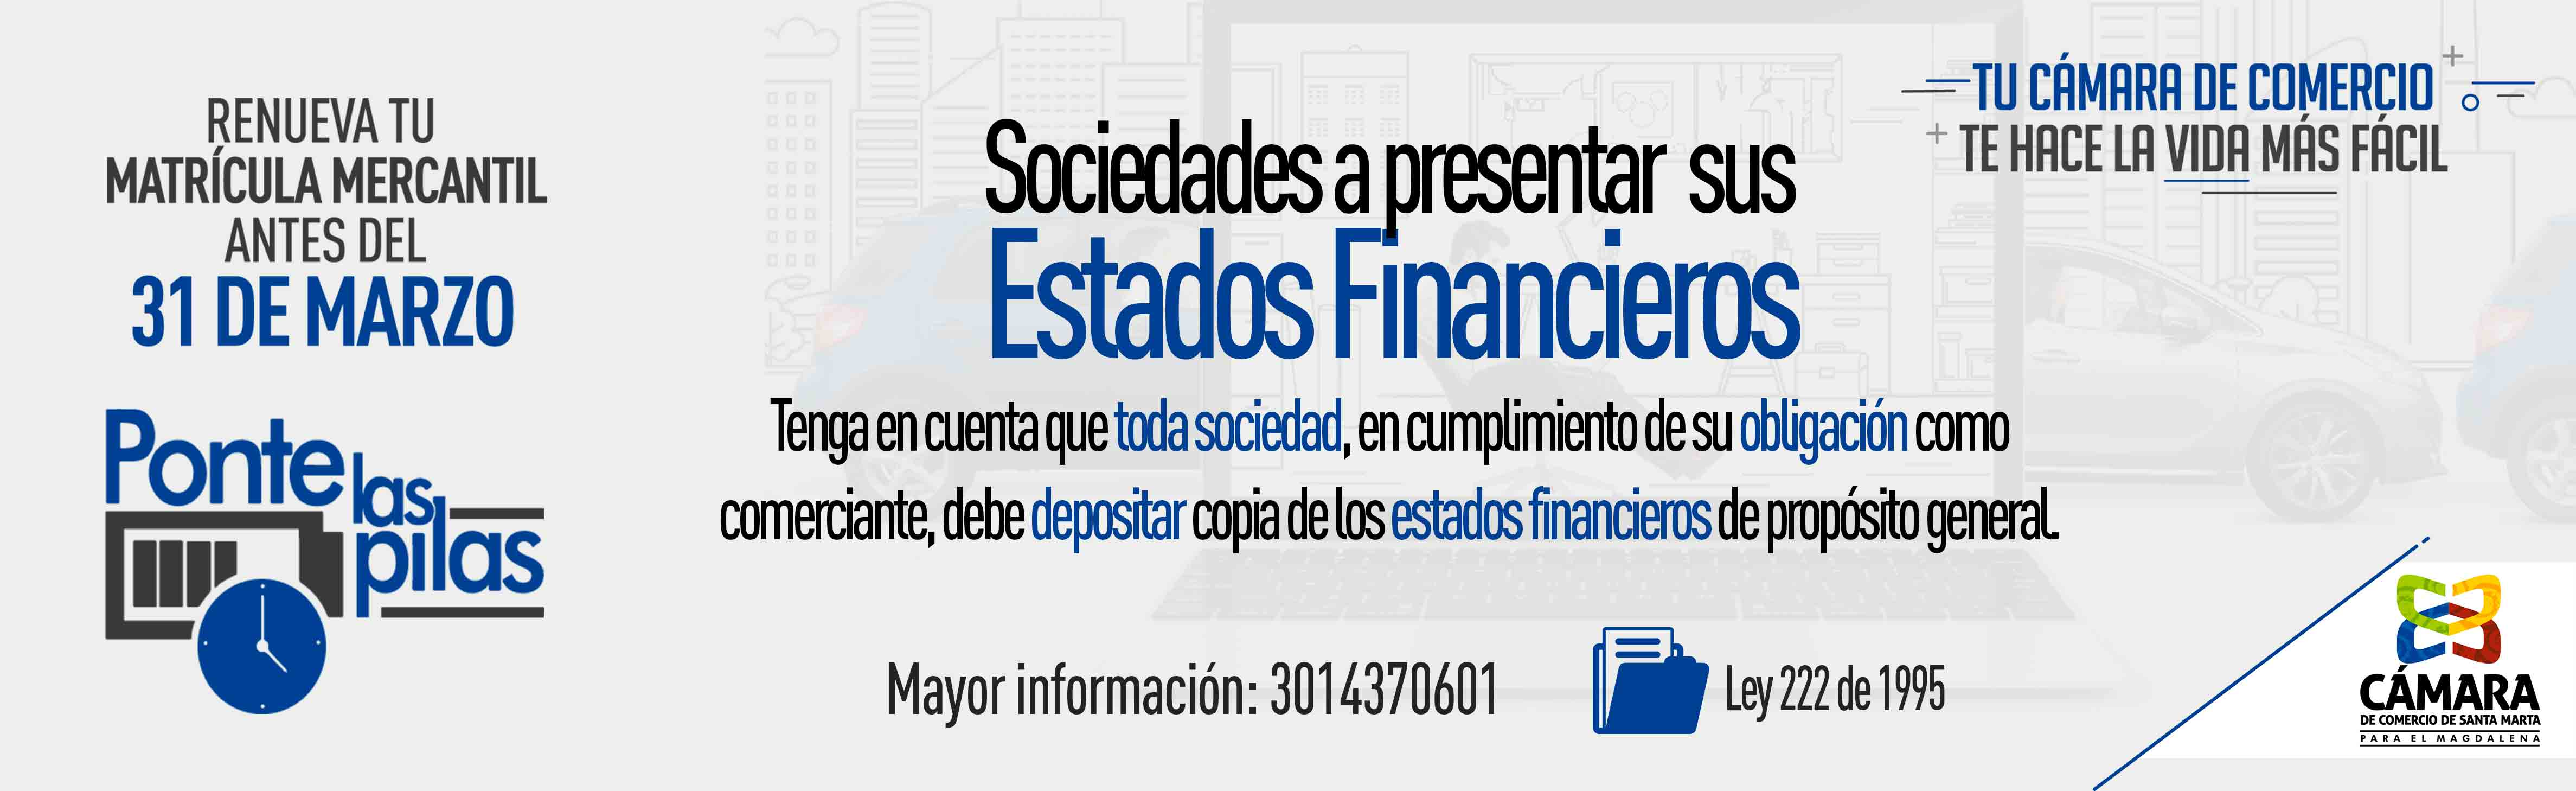 Depositos Financieros